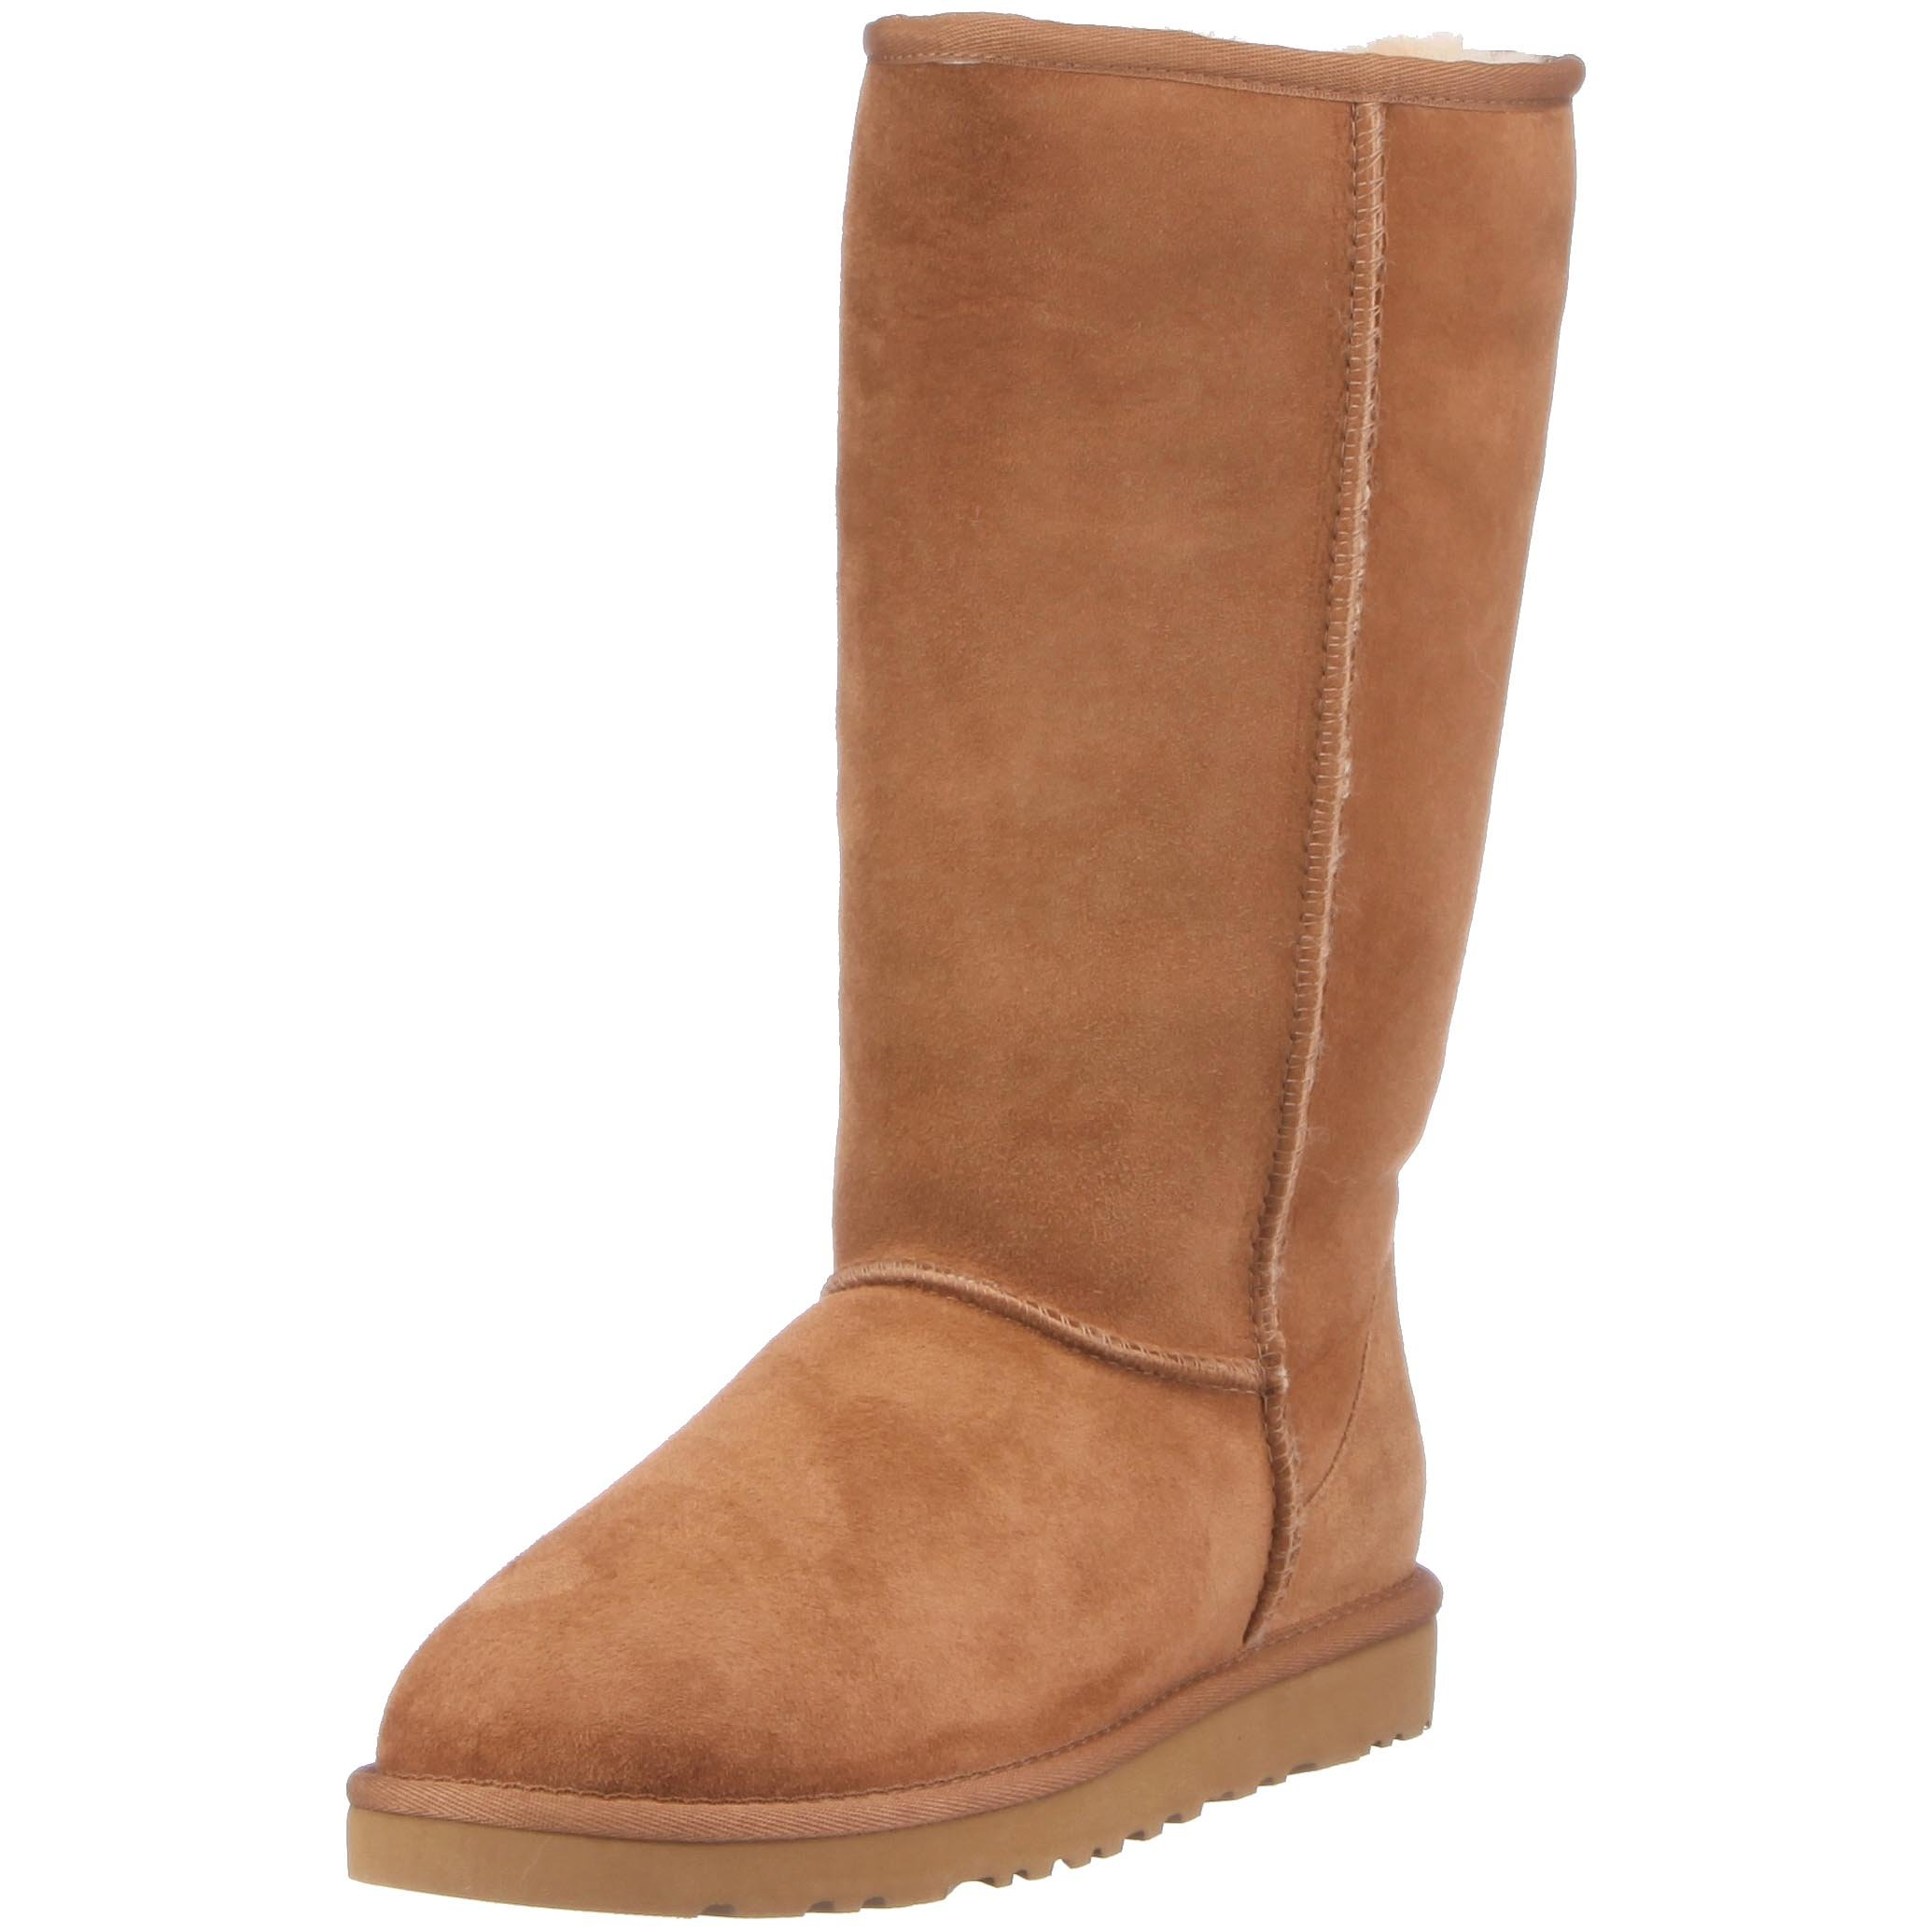 Ugg Rigger Boots